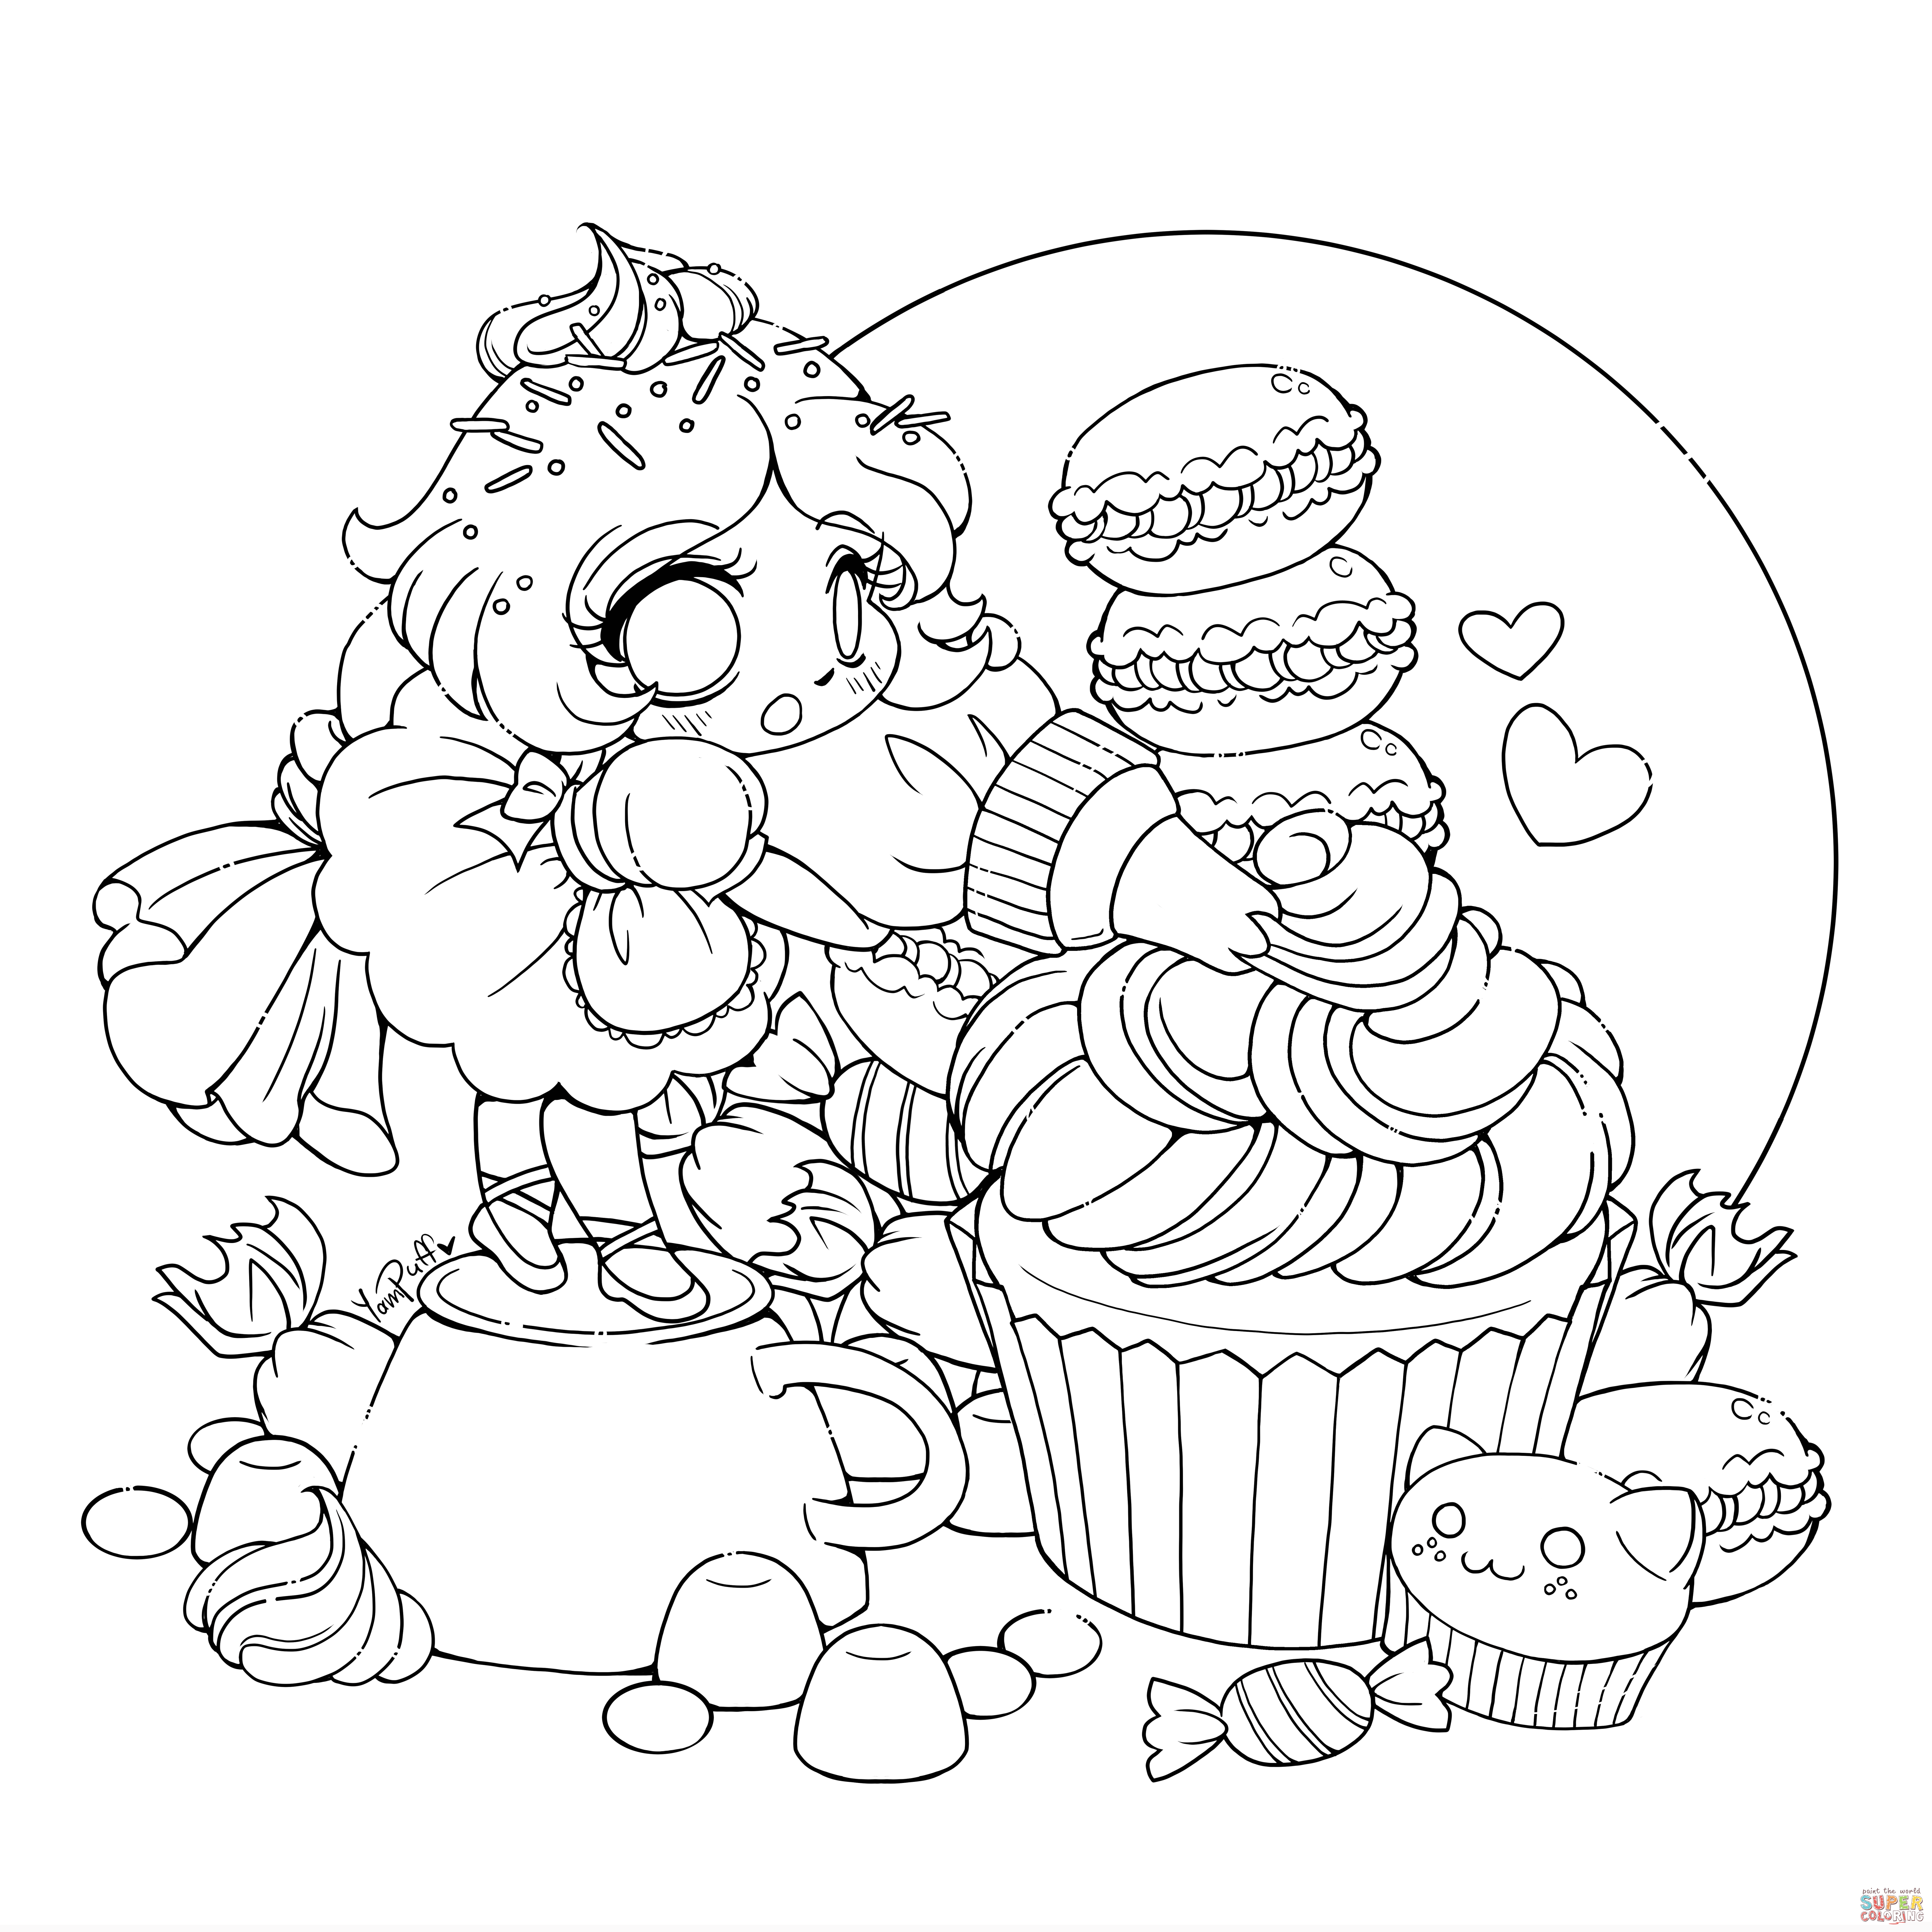 anime little girl coloring pages coloring pages for girls pdf at getcoloringscom free coloring pages little anime girl